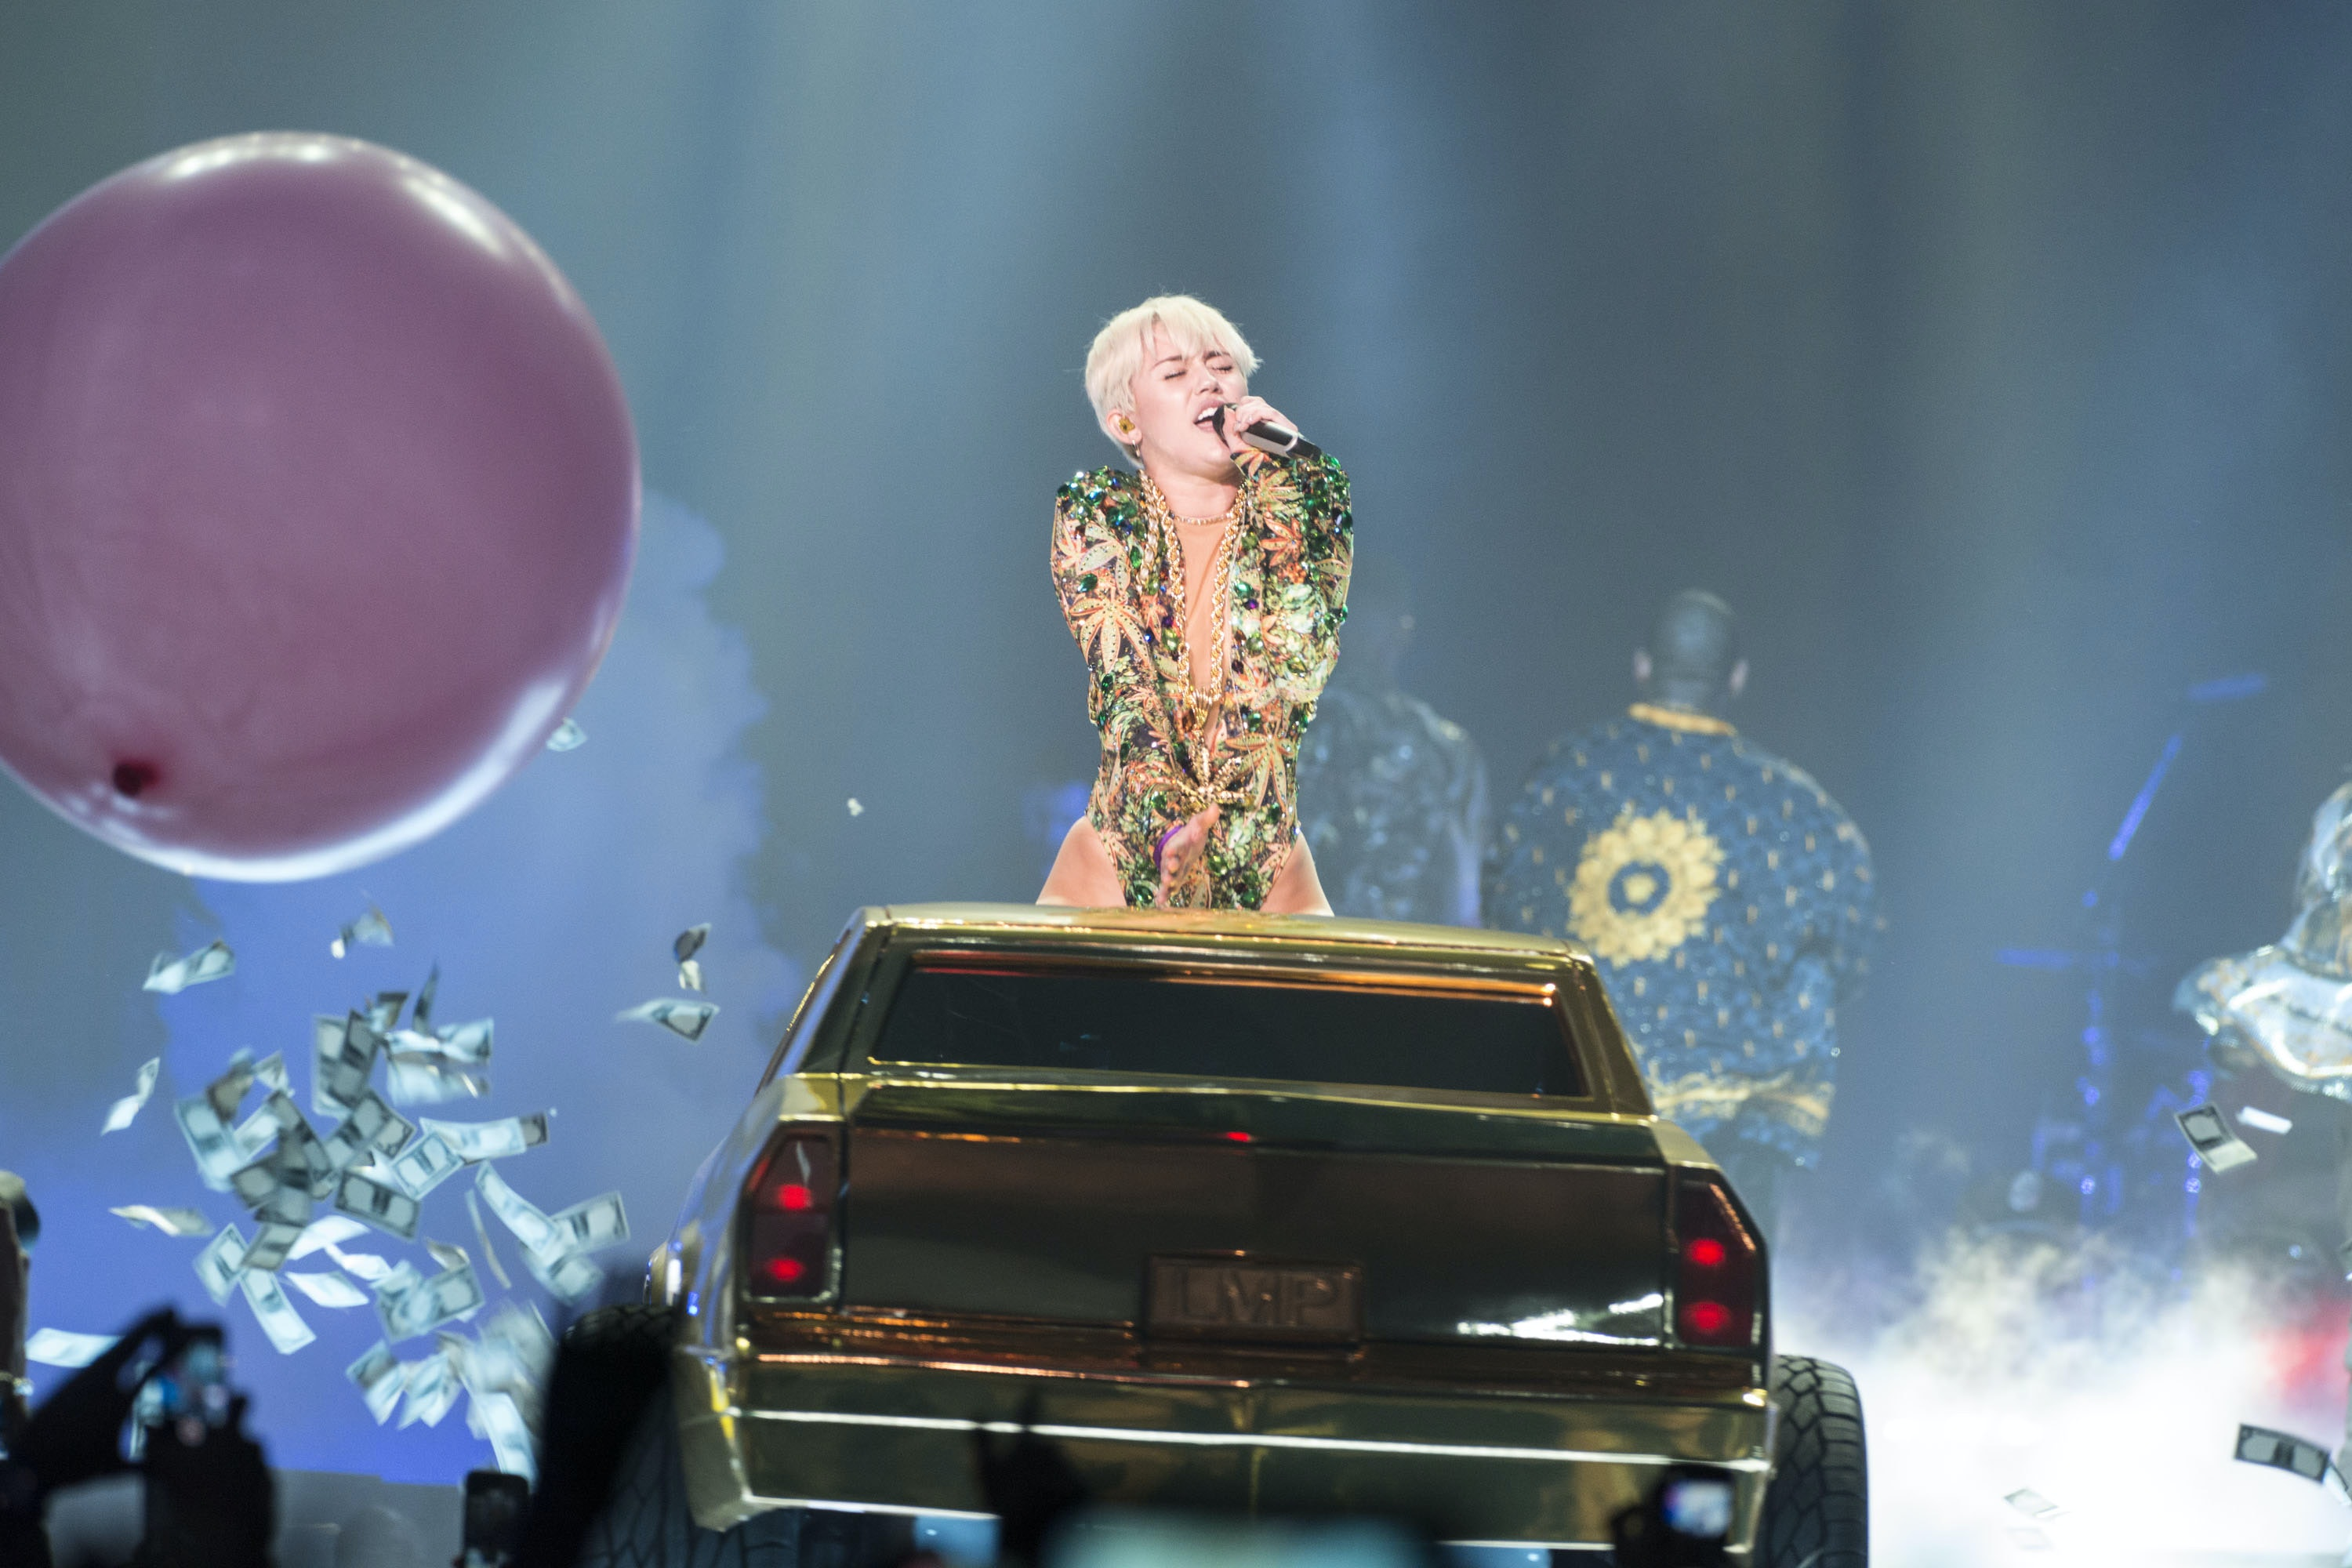 Miley, cyrus throws around paper money as she arrives